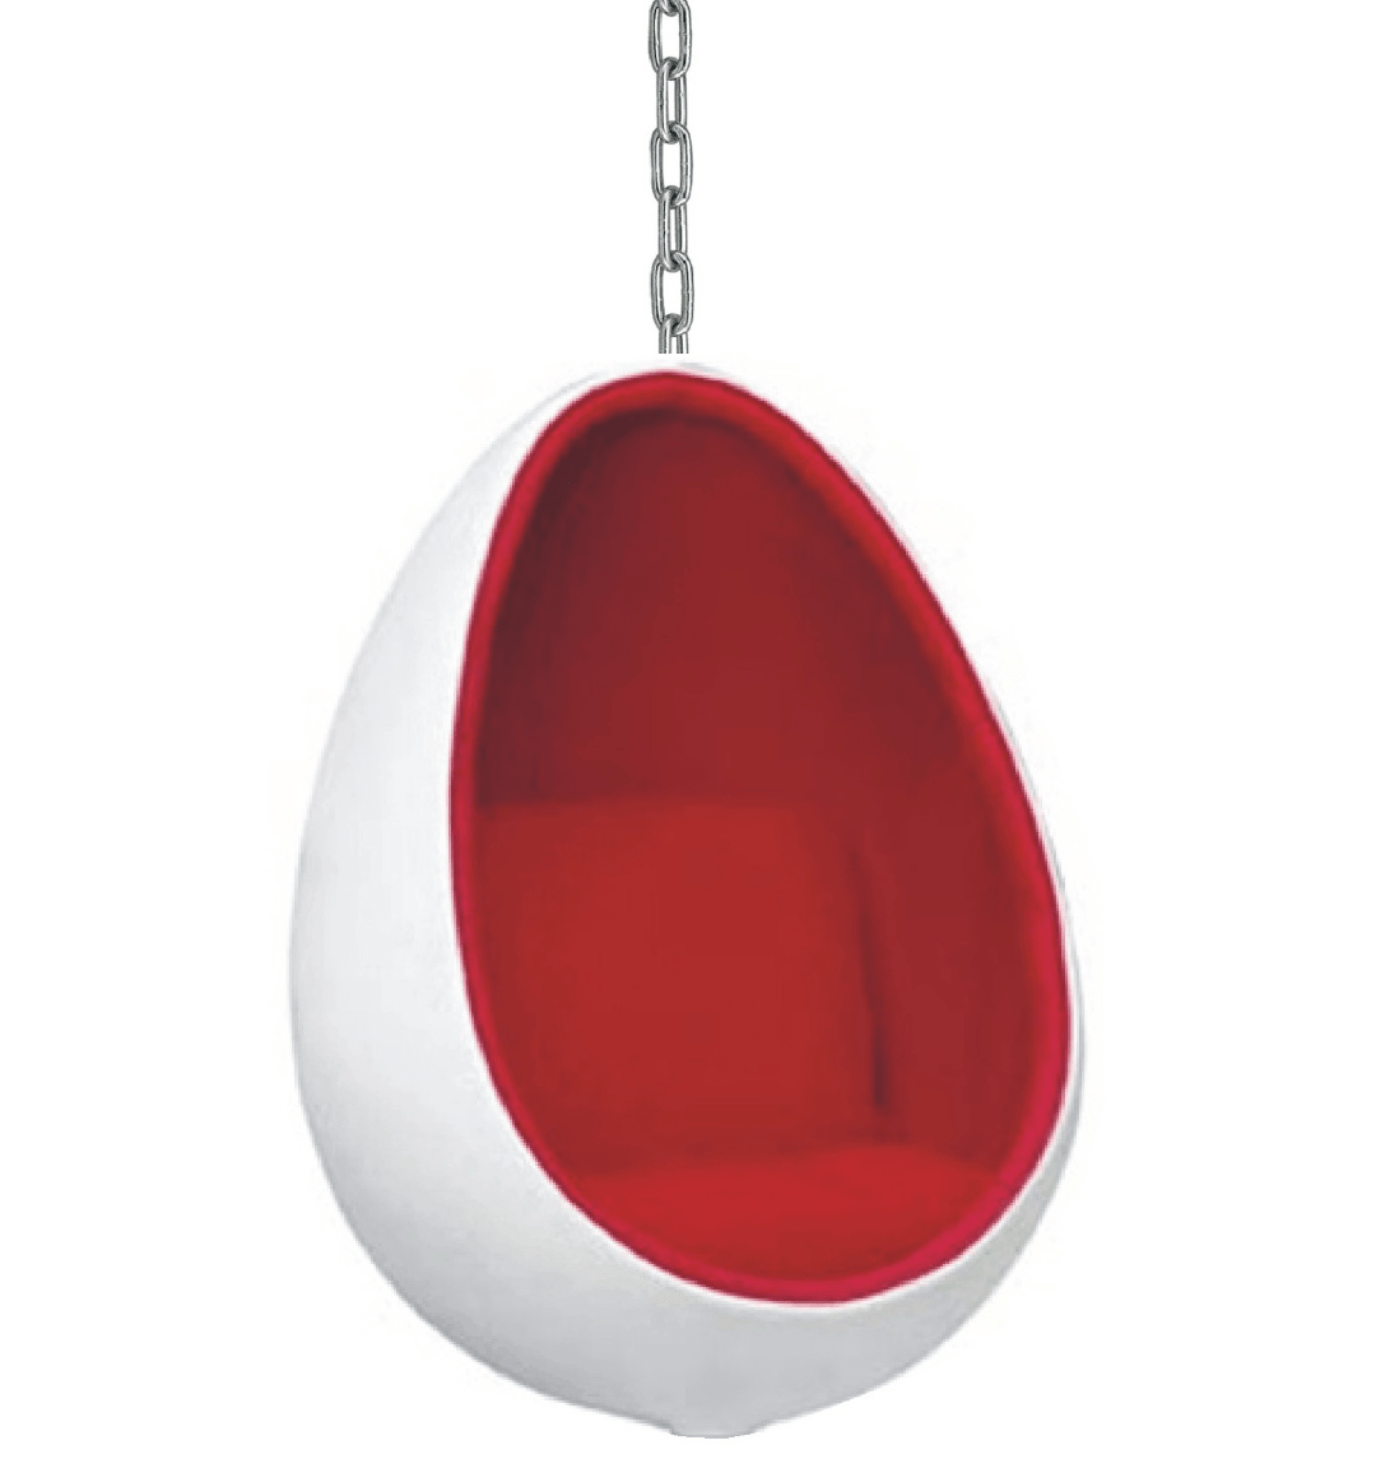 Trendspotting Hanging Chairs are Swinging into Kids